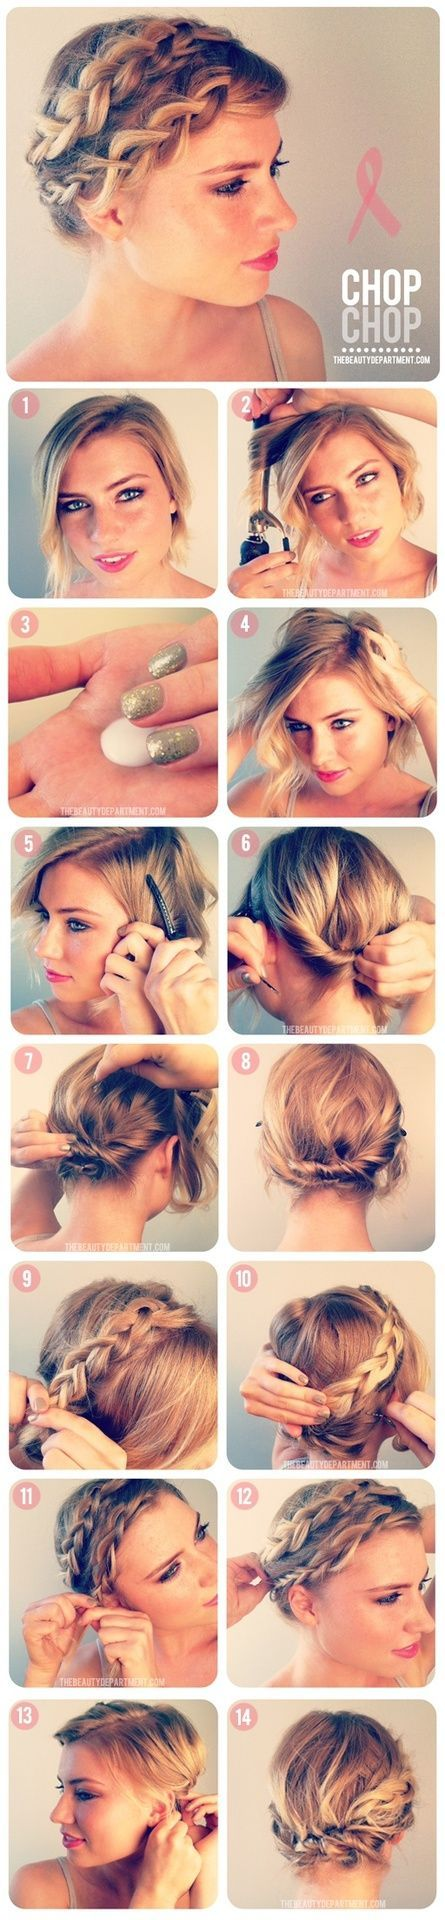 Ever wanted to do #hairstyles